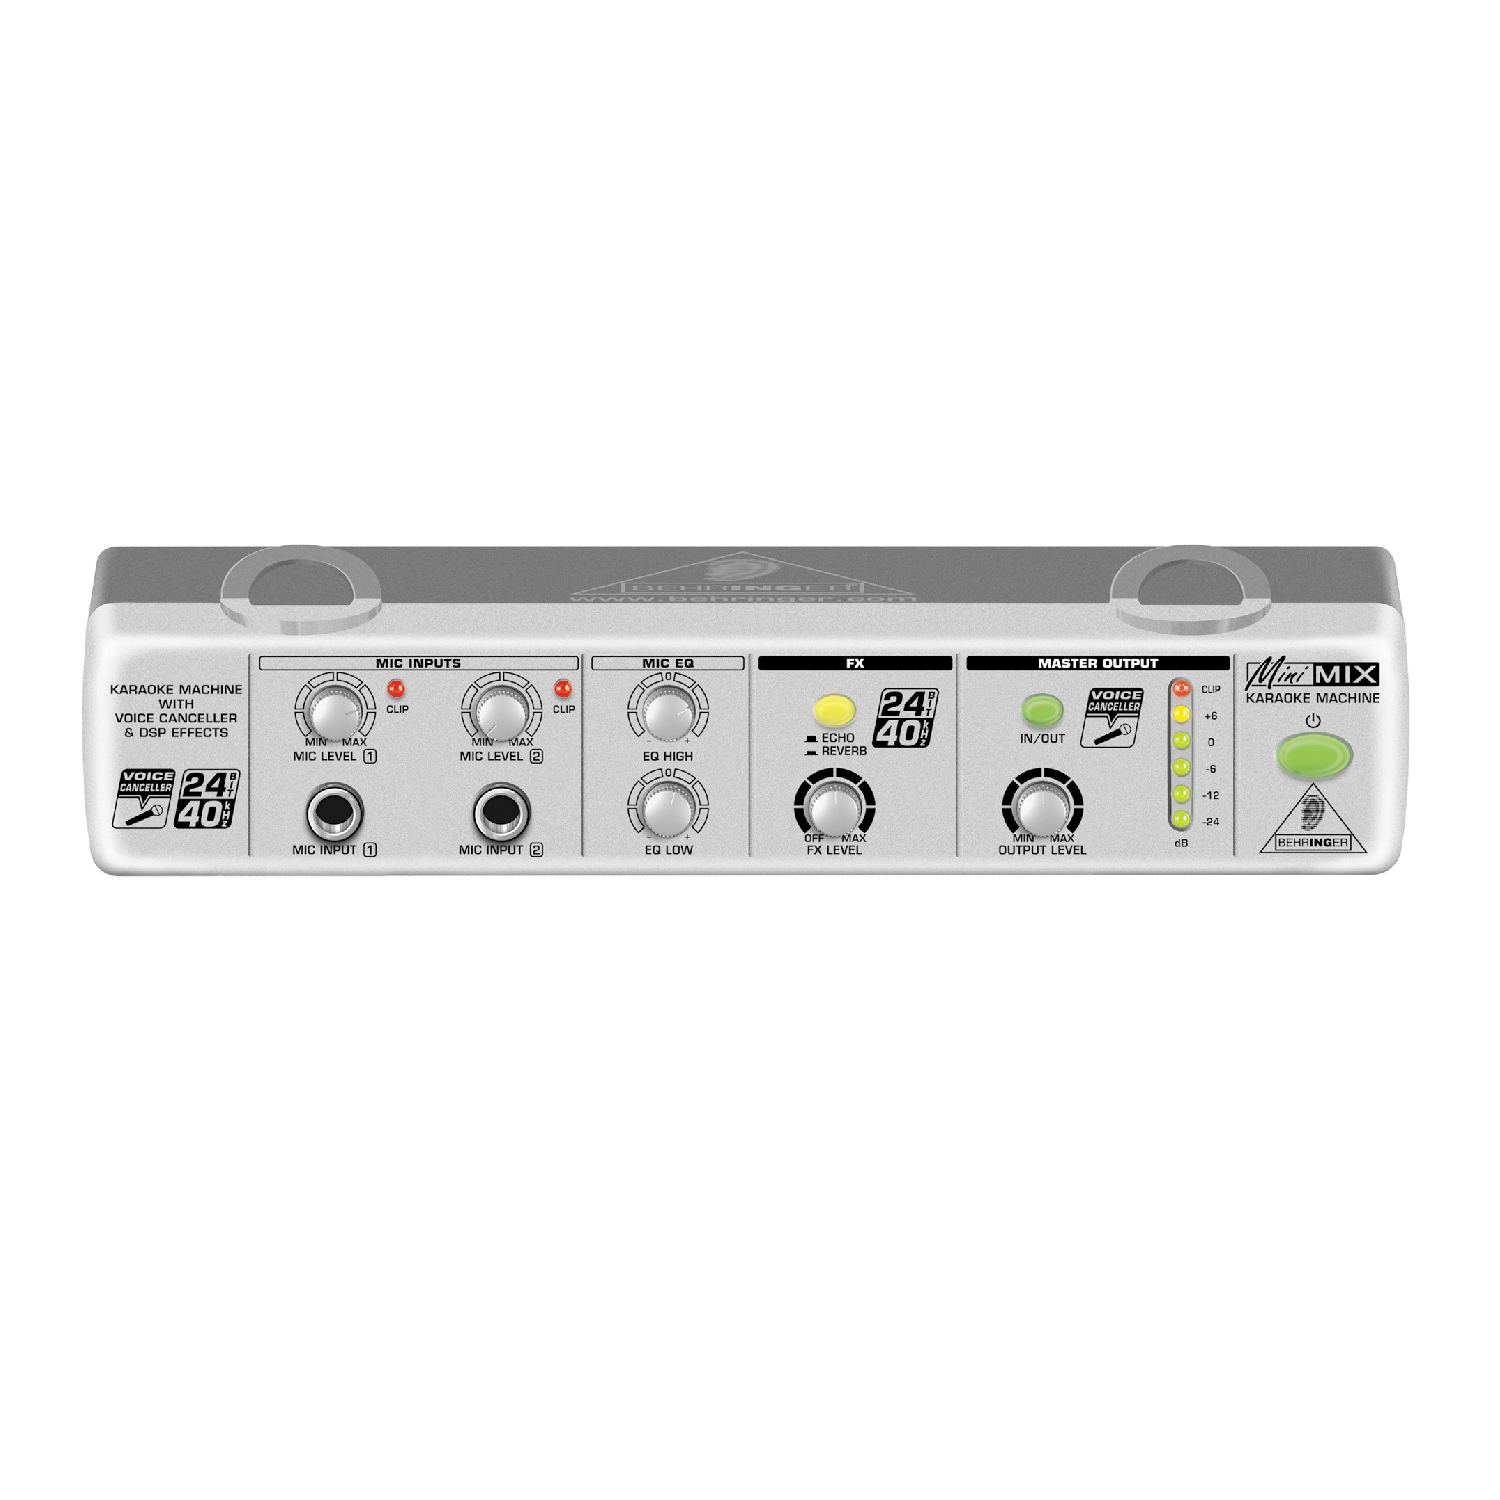 Ultra-Compact Karaoke Processor with Voice Canceller and Echo/Reverb Effects   MIX 800 behringer